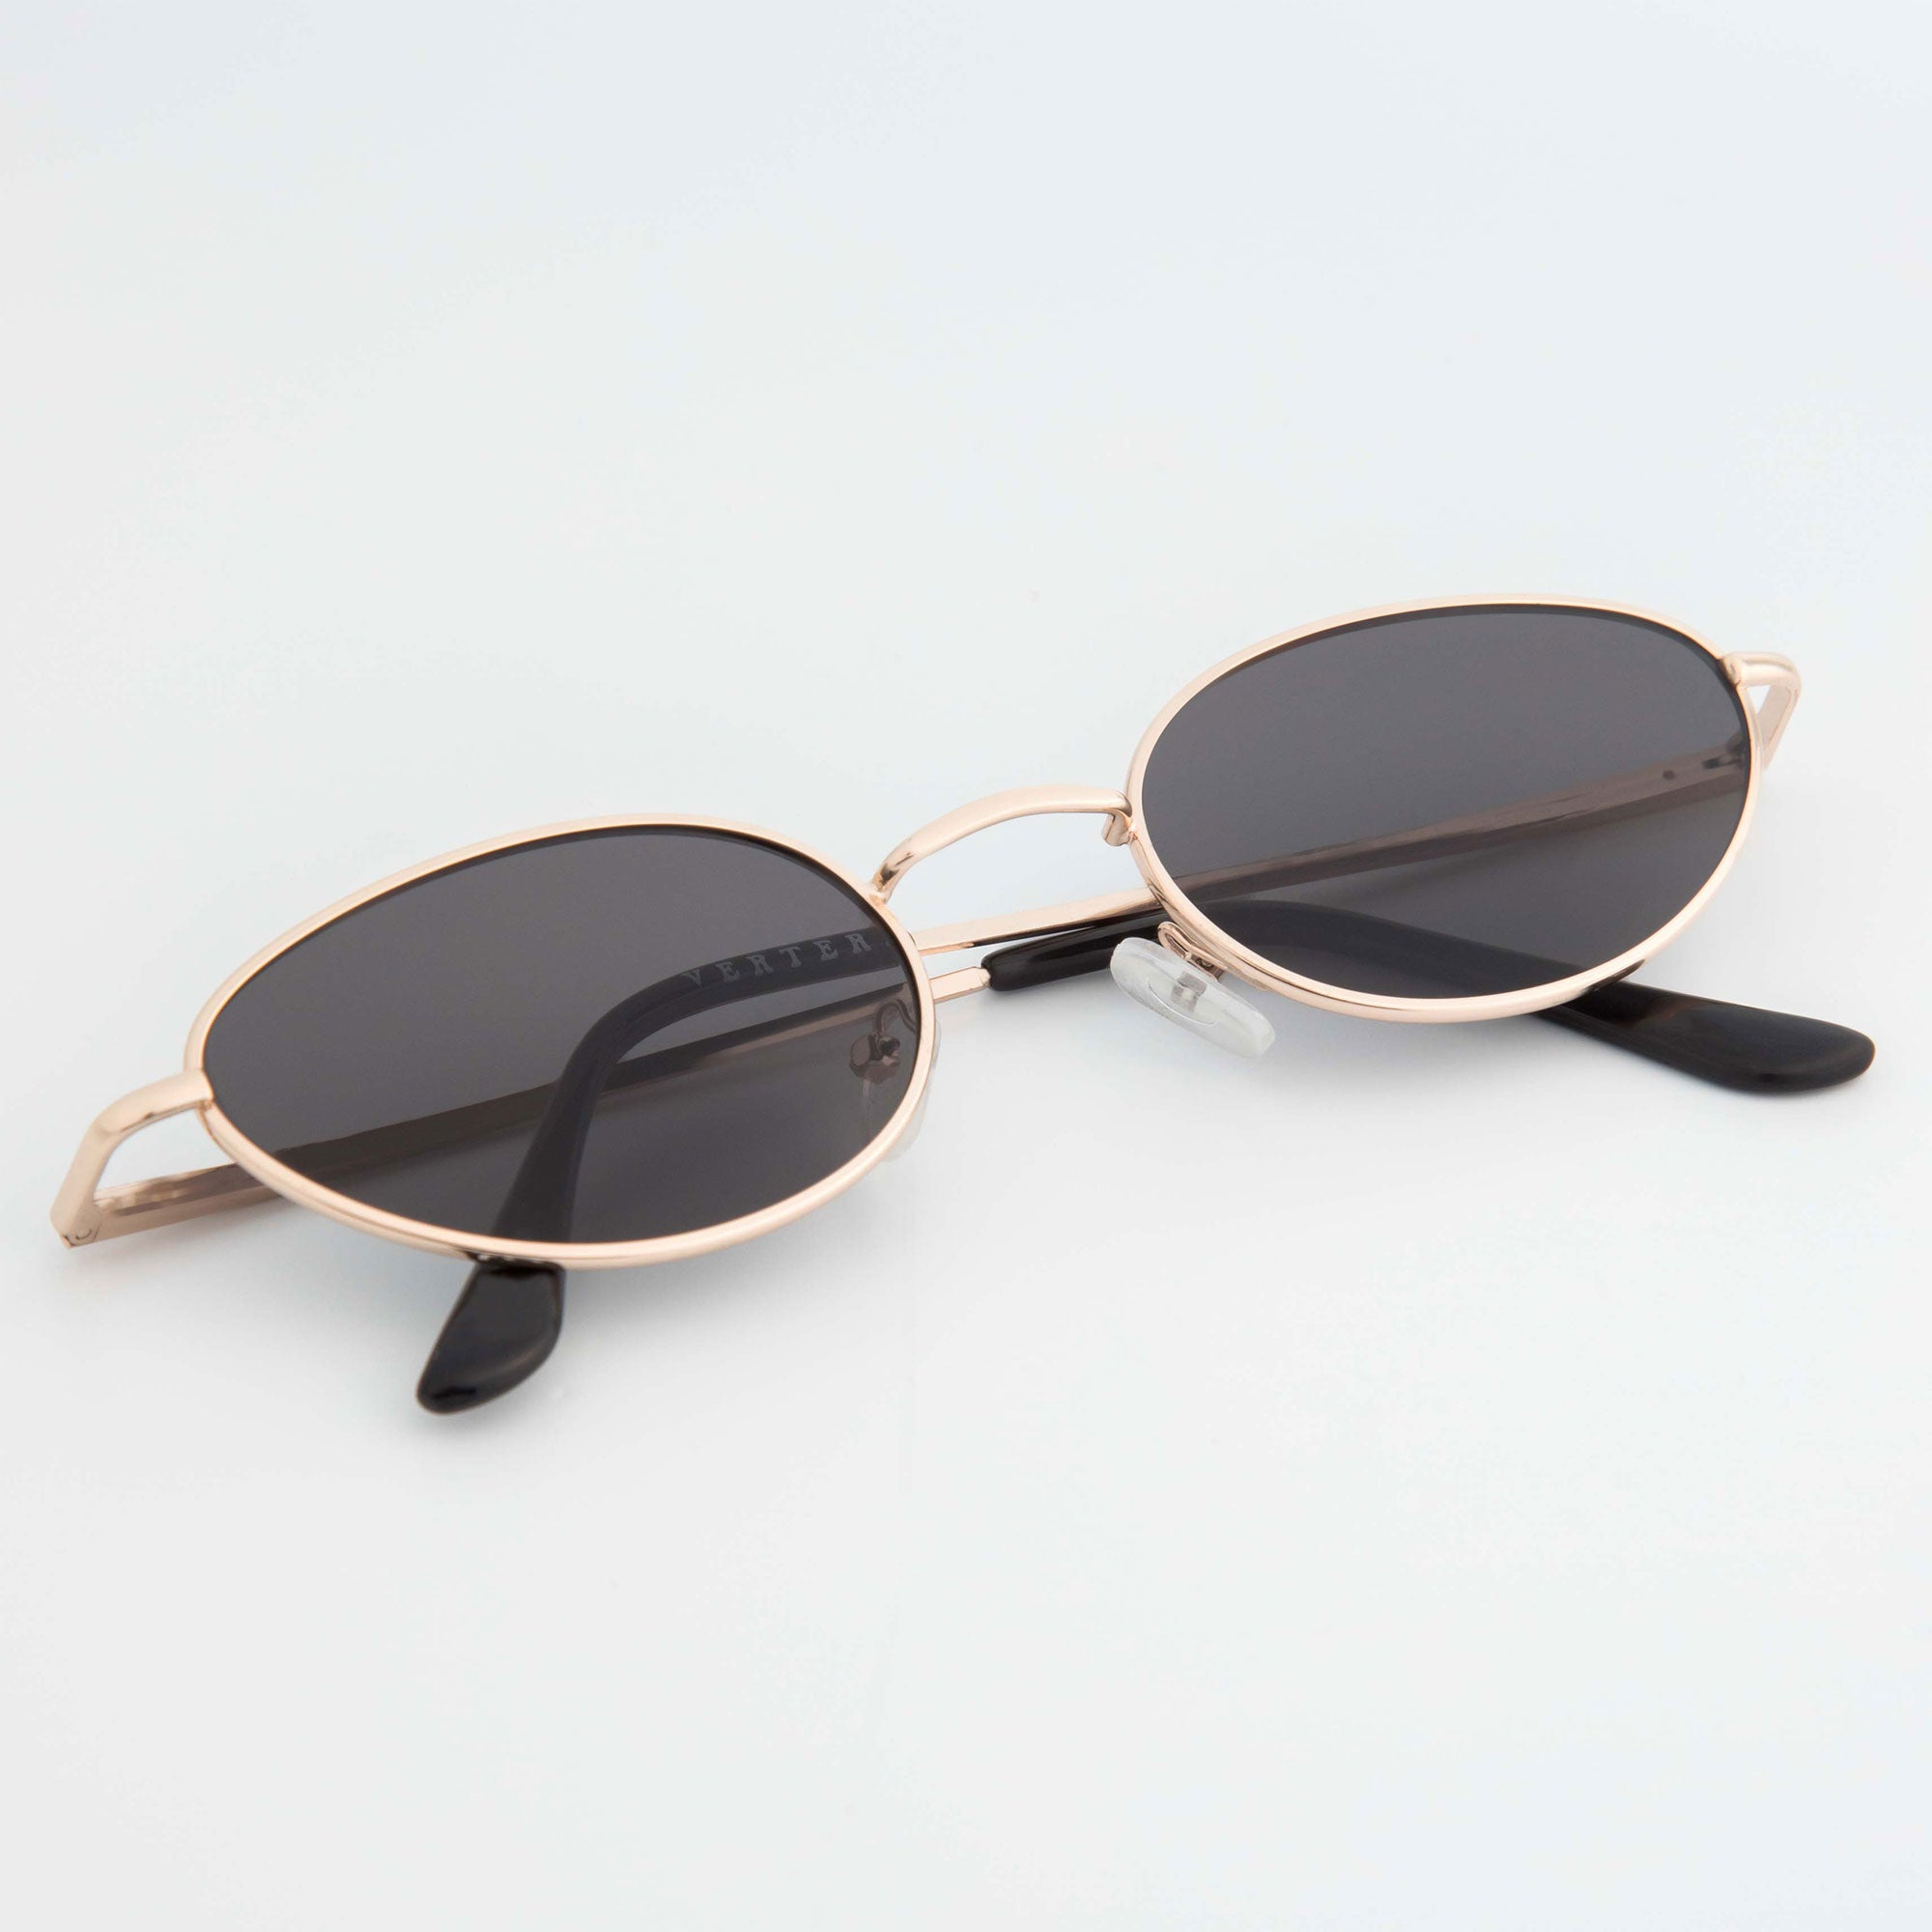 OVAL SUNGLASSES INCL. CHAIN - BLACK / GOLD